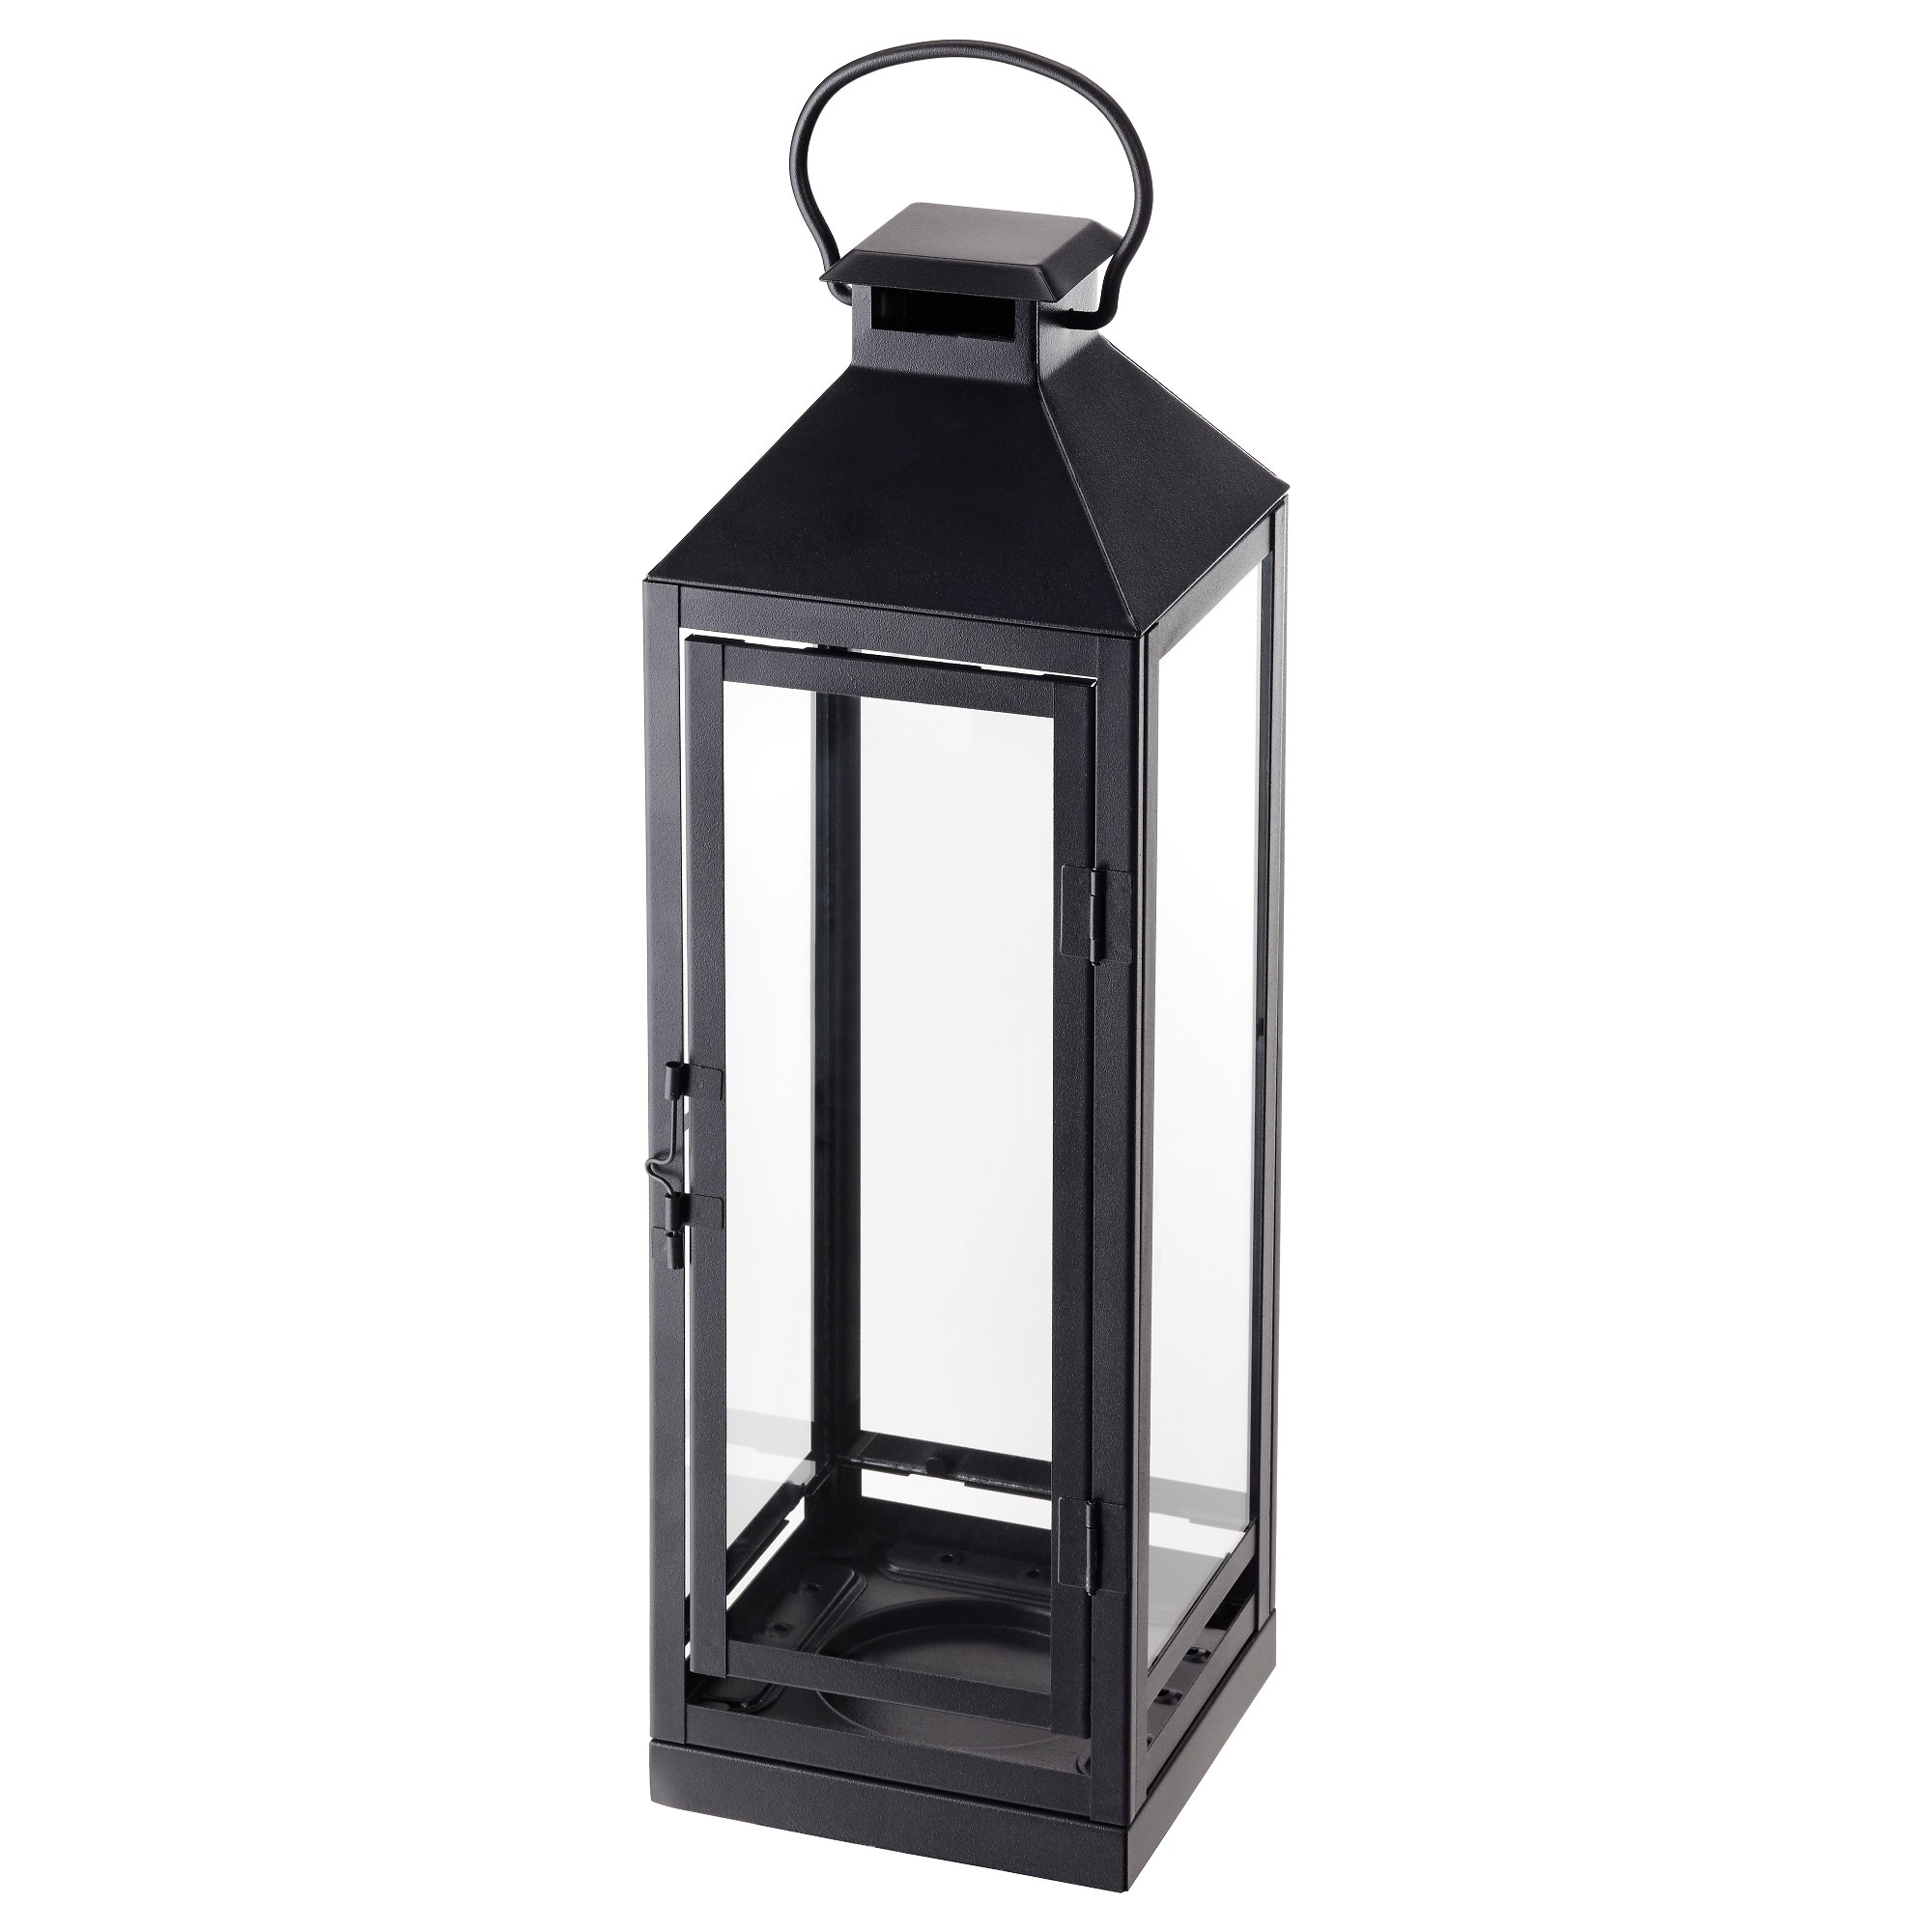 Lanterns & Candle Lanterns - Ikea throughout Outdoor Lanterns Without Glass (Image 13 of 20)